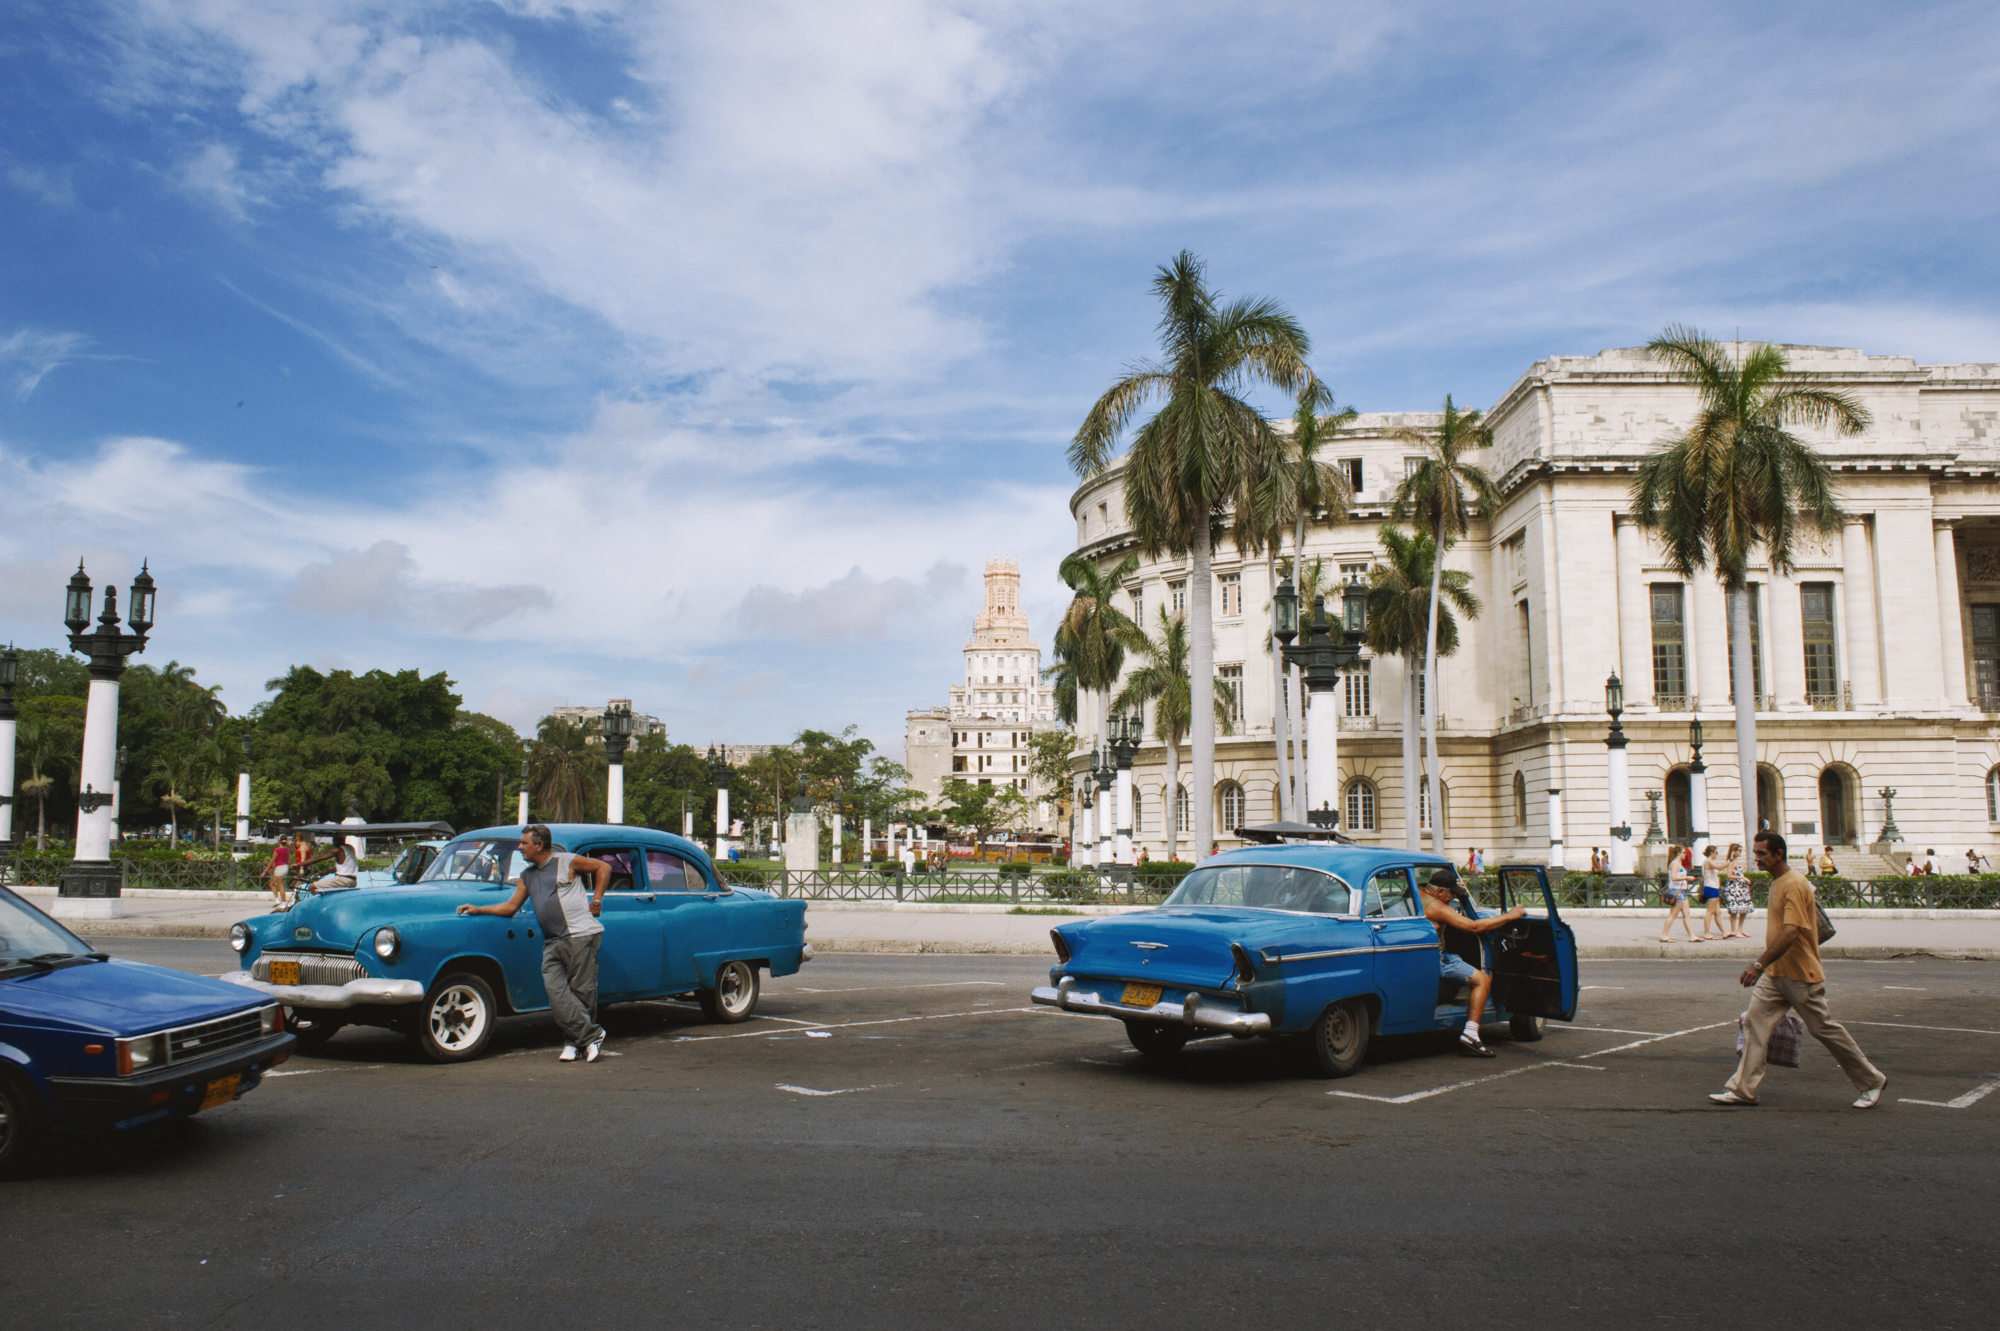 wojtek-jakubiec-photographer-montreal-cuba-havana-street-documentary-taxis-waiting-.jpg